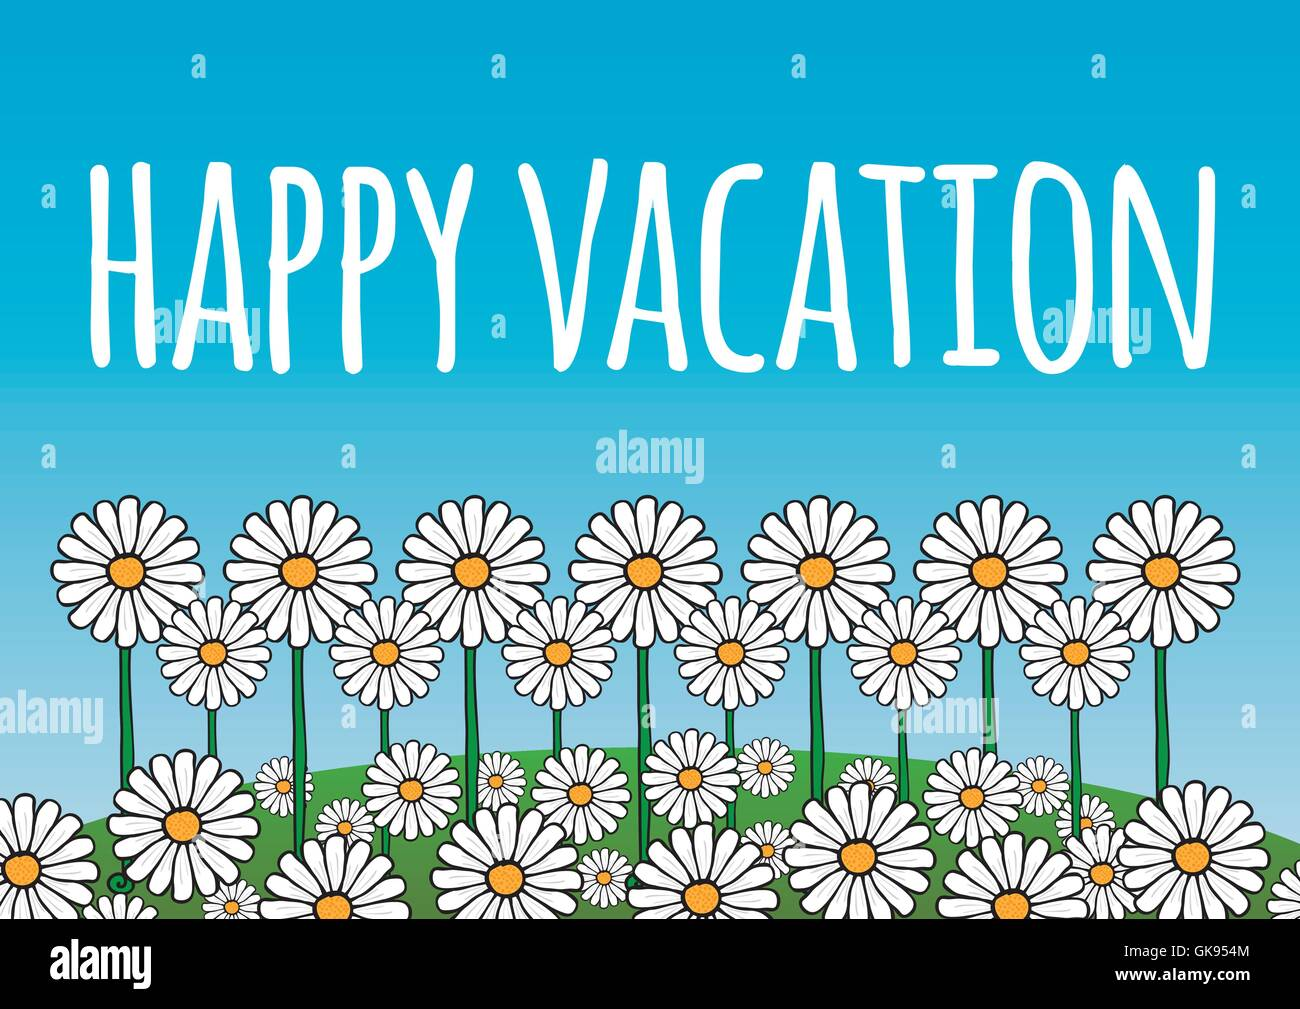 Happy Vacation Card Poster Contains Daisy Flowers On A Green Hill And Blue Sky Background Fresh Optimistic Natural Theme